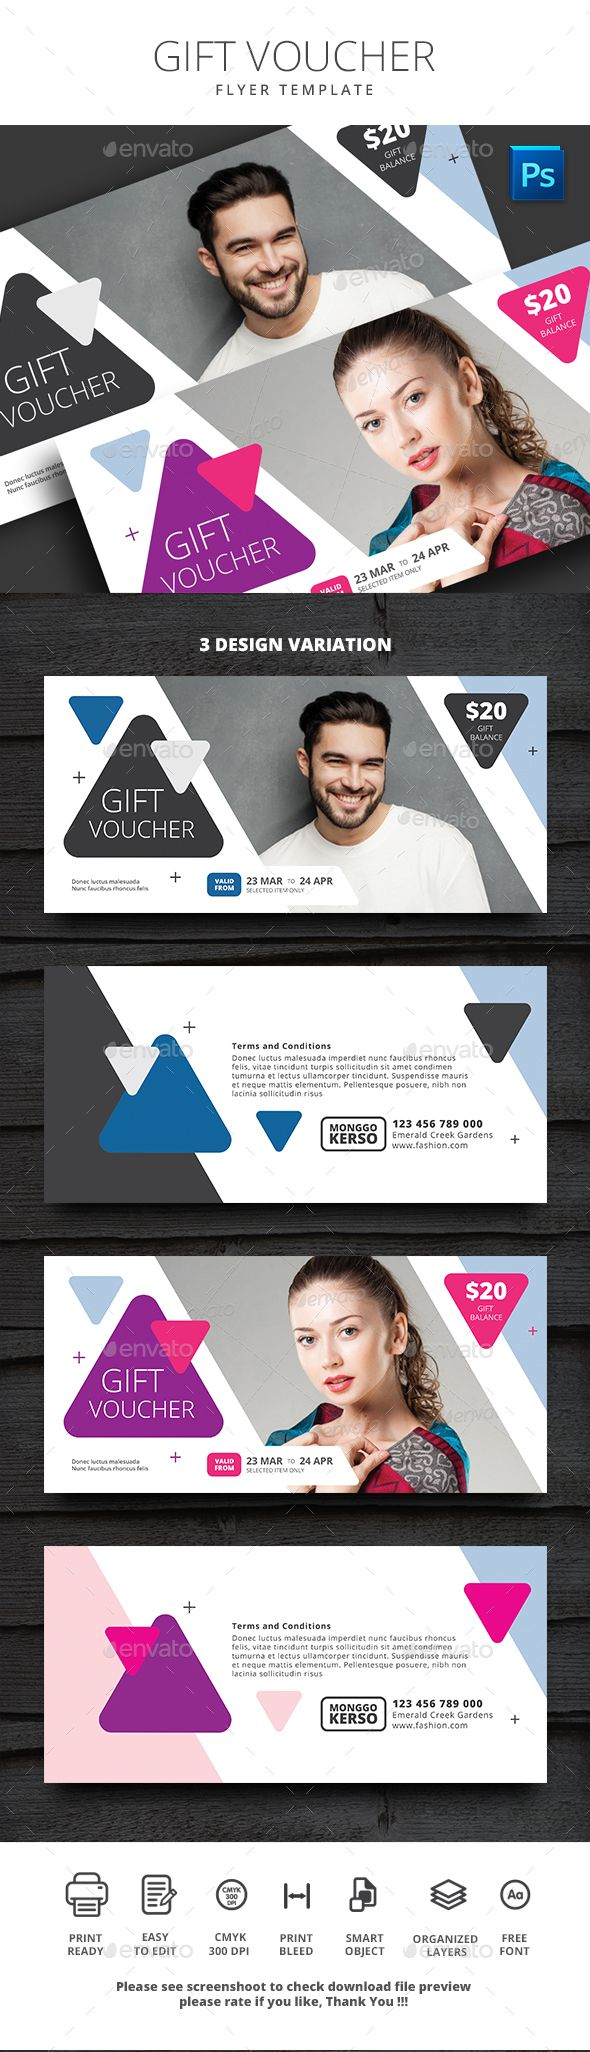 Gift Voucher Template PSD